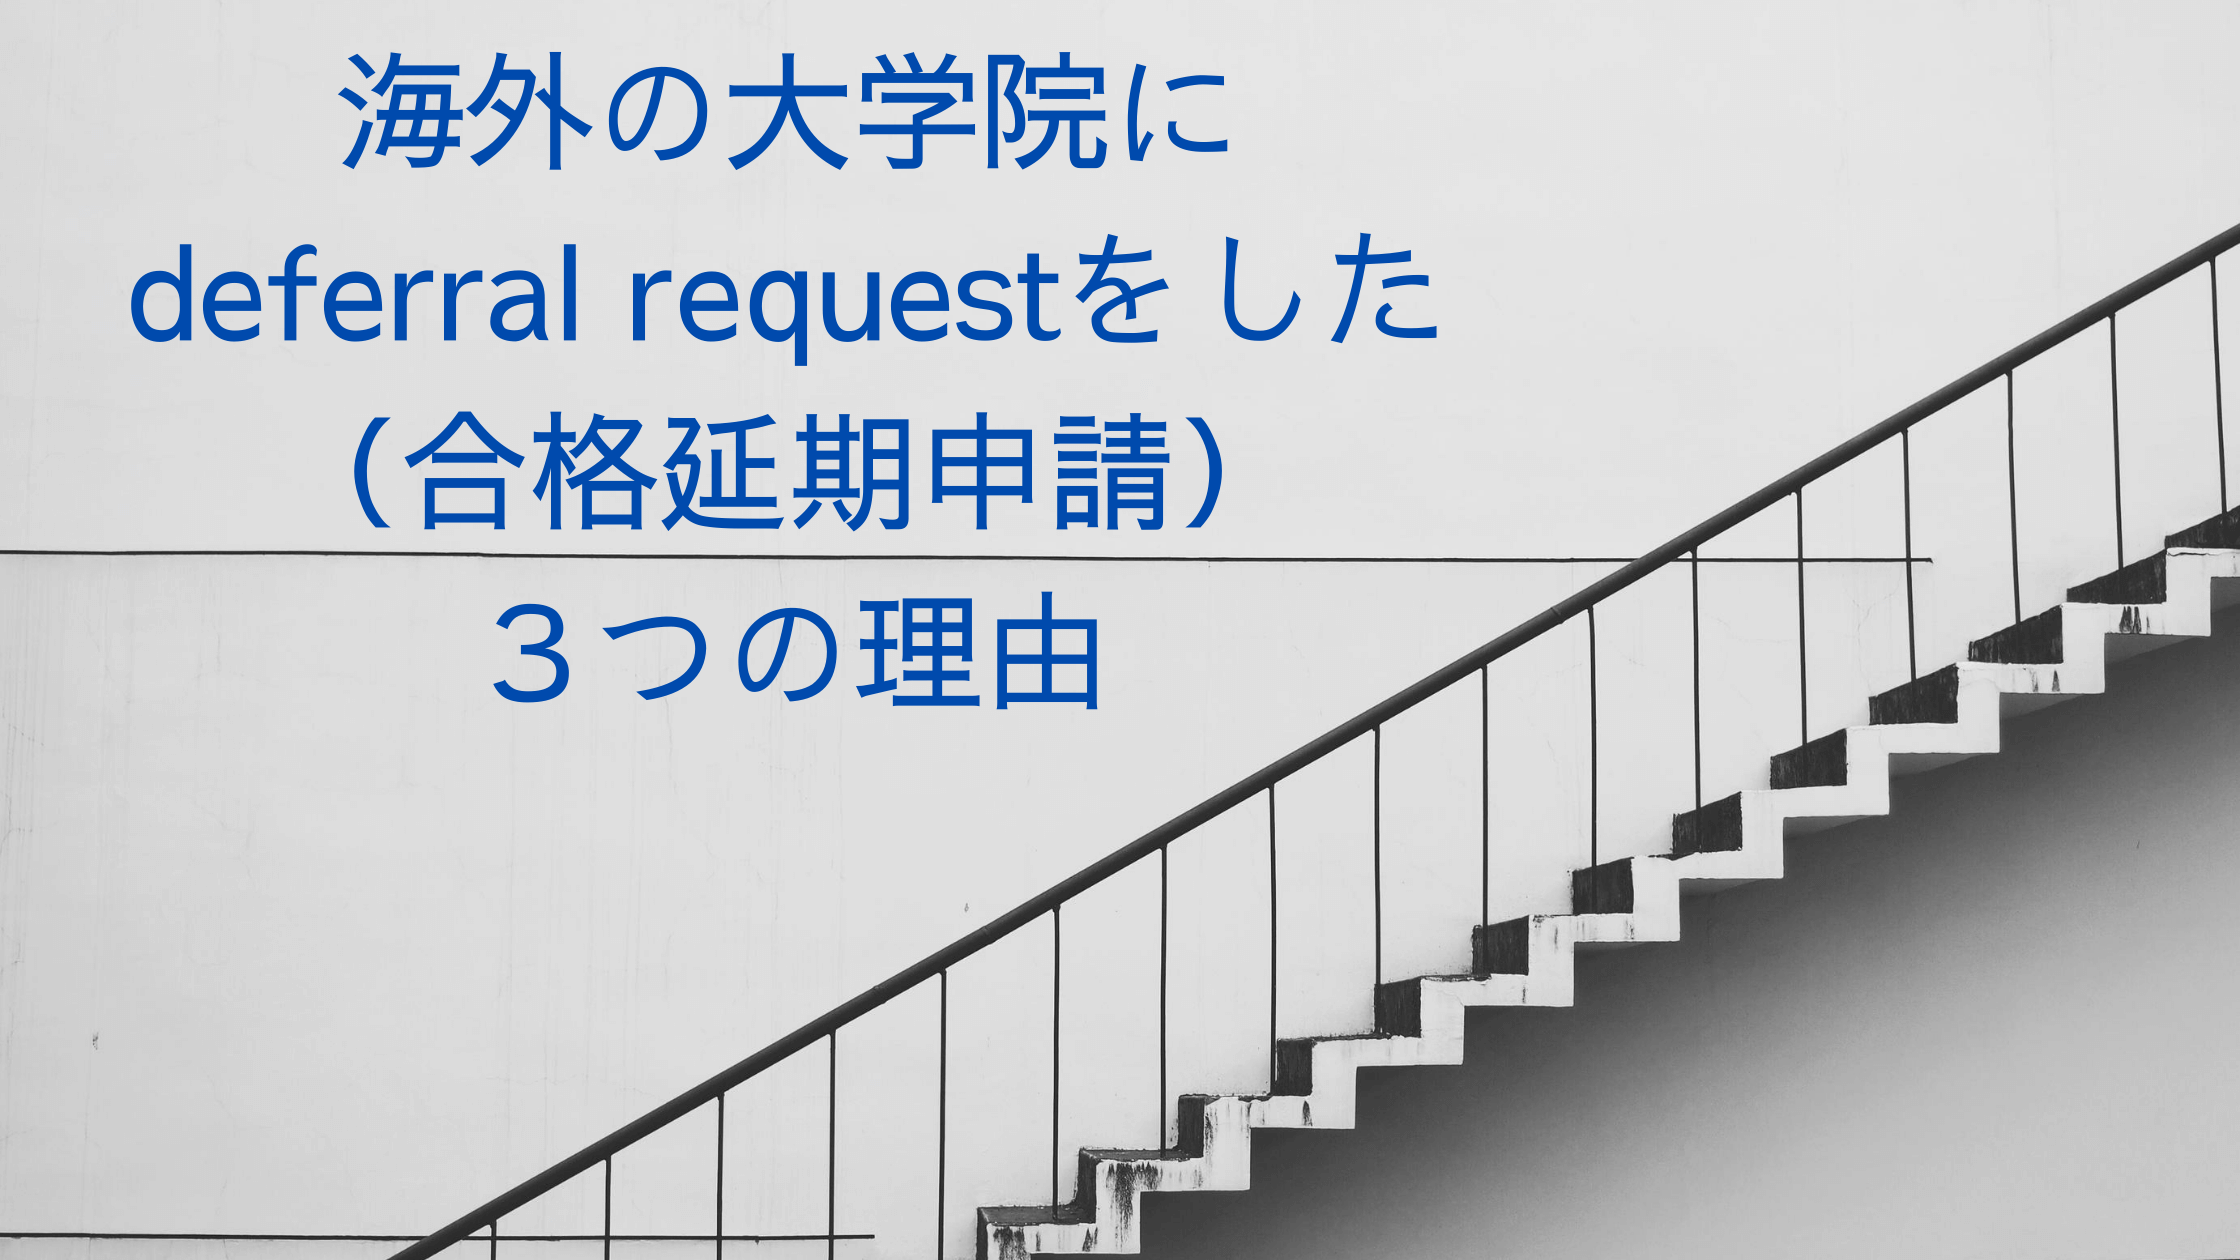 deferral request